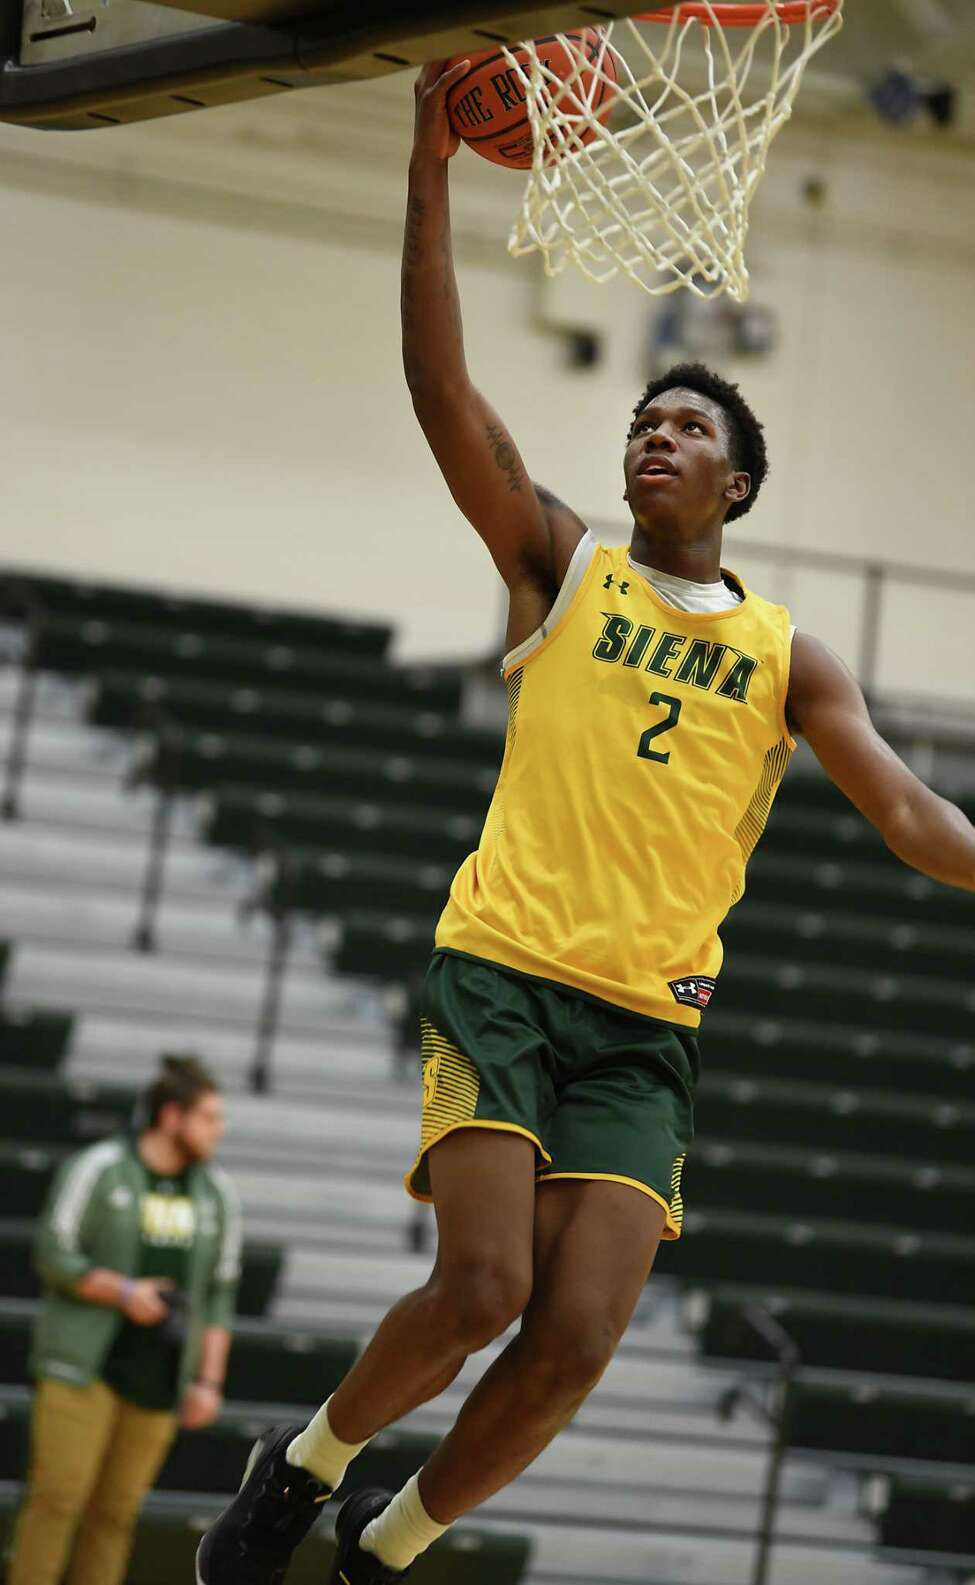 Gary Harris, Jr. goes up for a shot as Siena men's basketball holds an open practice for fans at the Alumni Recreation Center at Siena College on Monday, Oct. 7, 2019 in Loudonville, N.Y. (Lori Van Buren/Times Union)